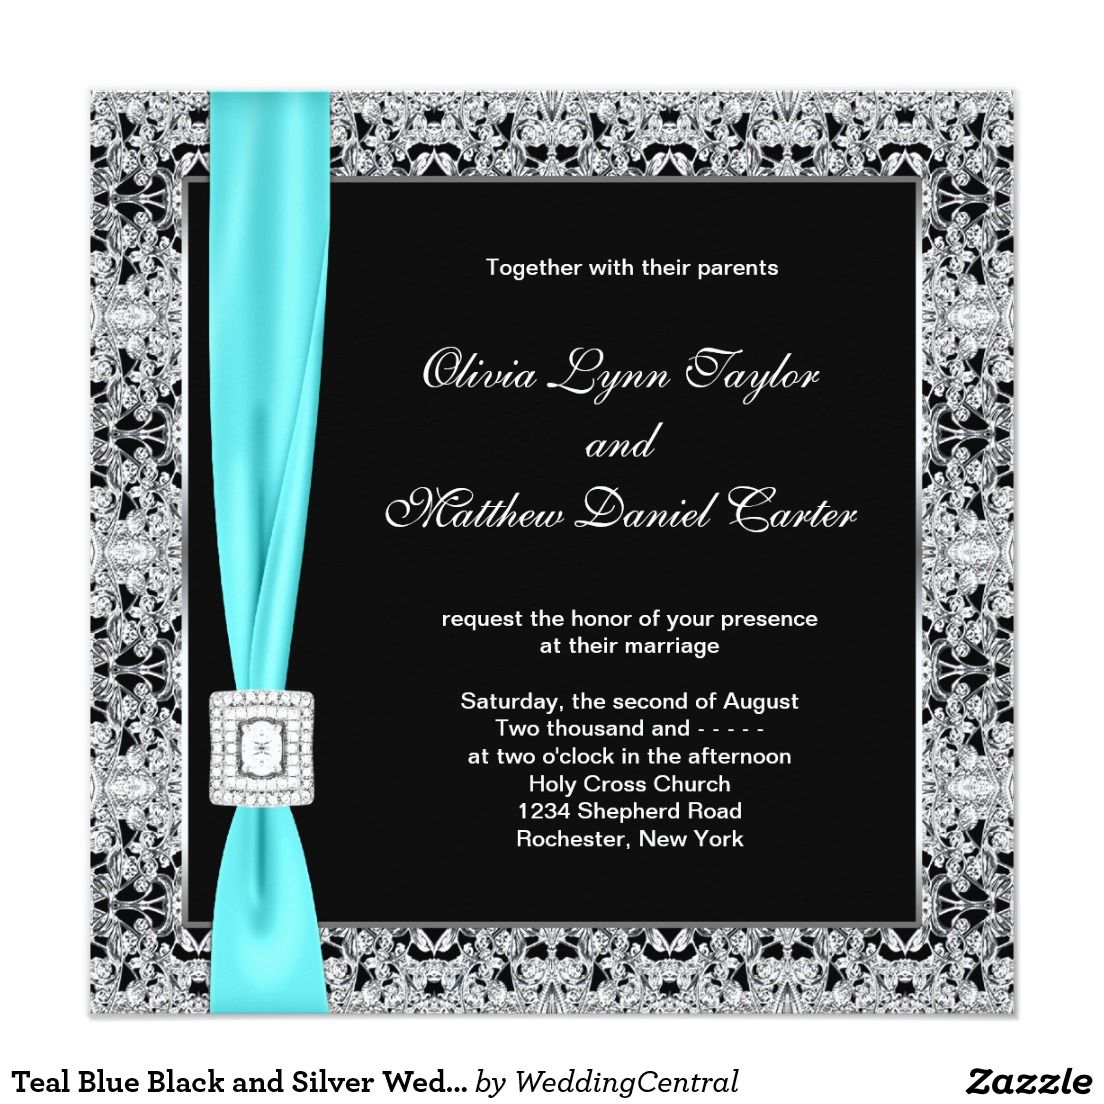 Teal Blue Black and Silver Wedding